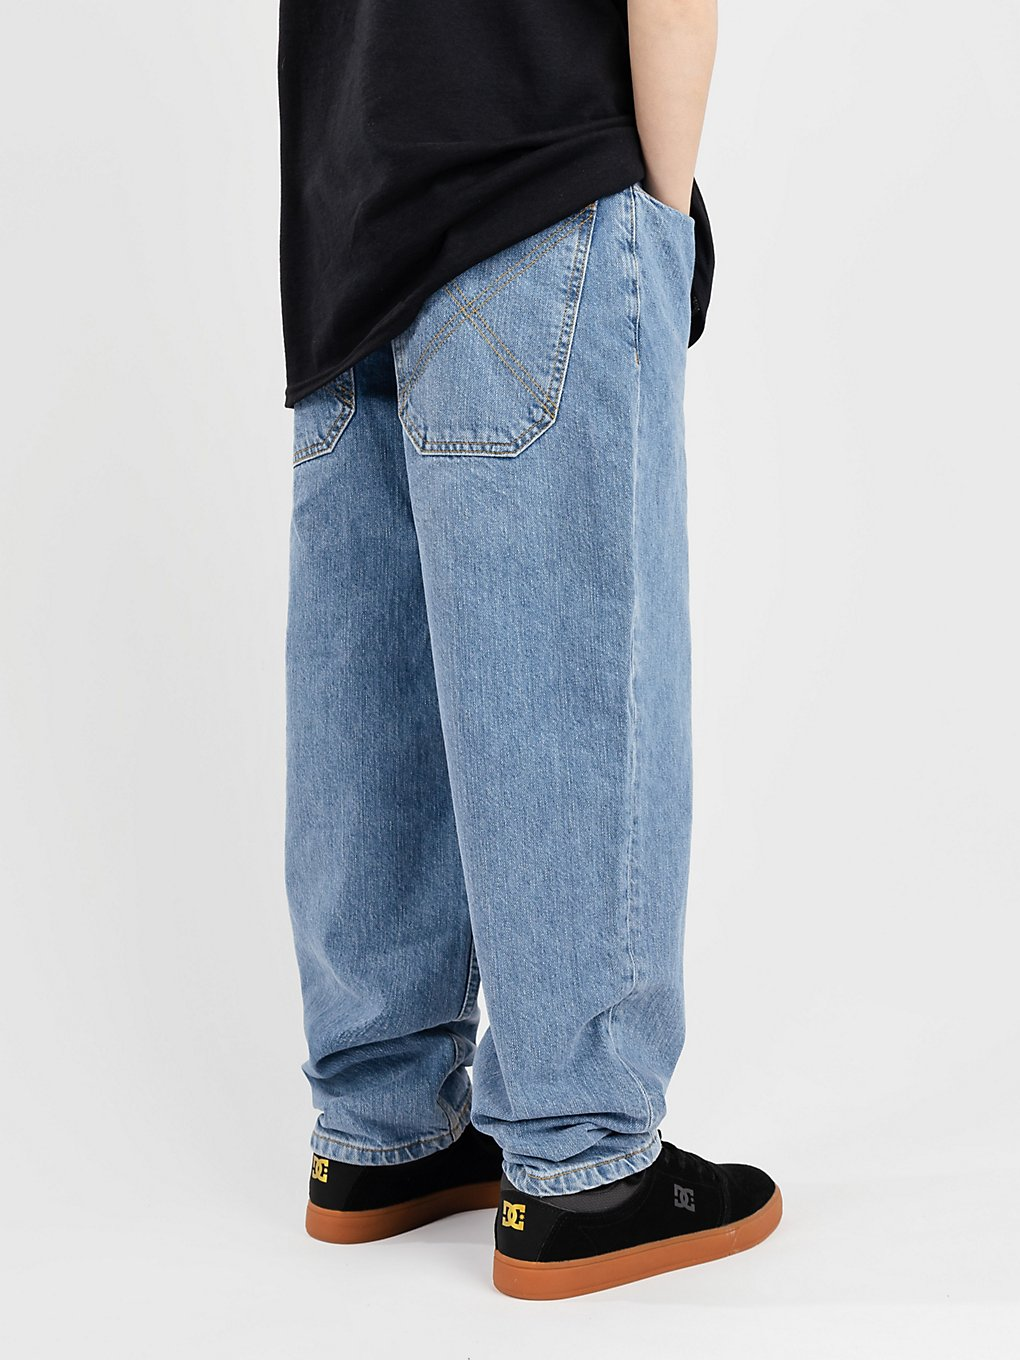 Homeboy X-Tra Baggy 30 Jeans moon kaufen